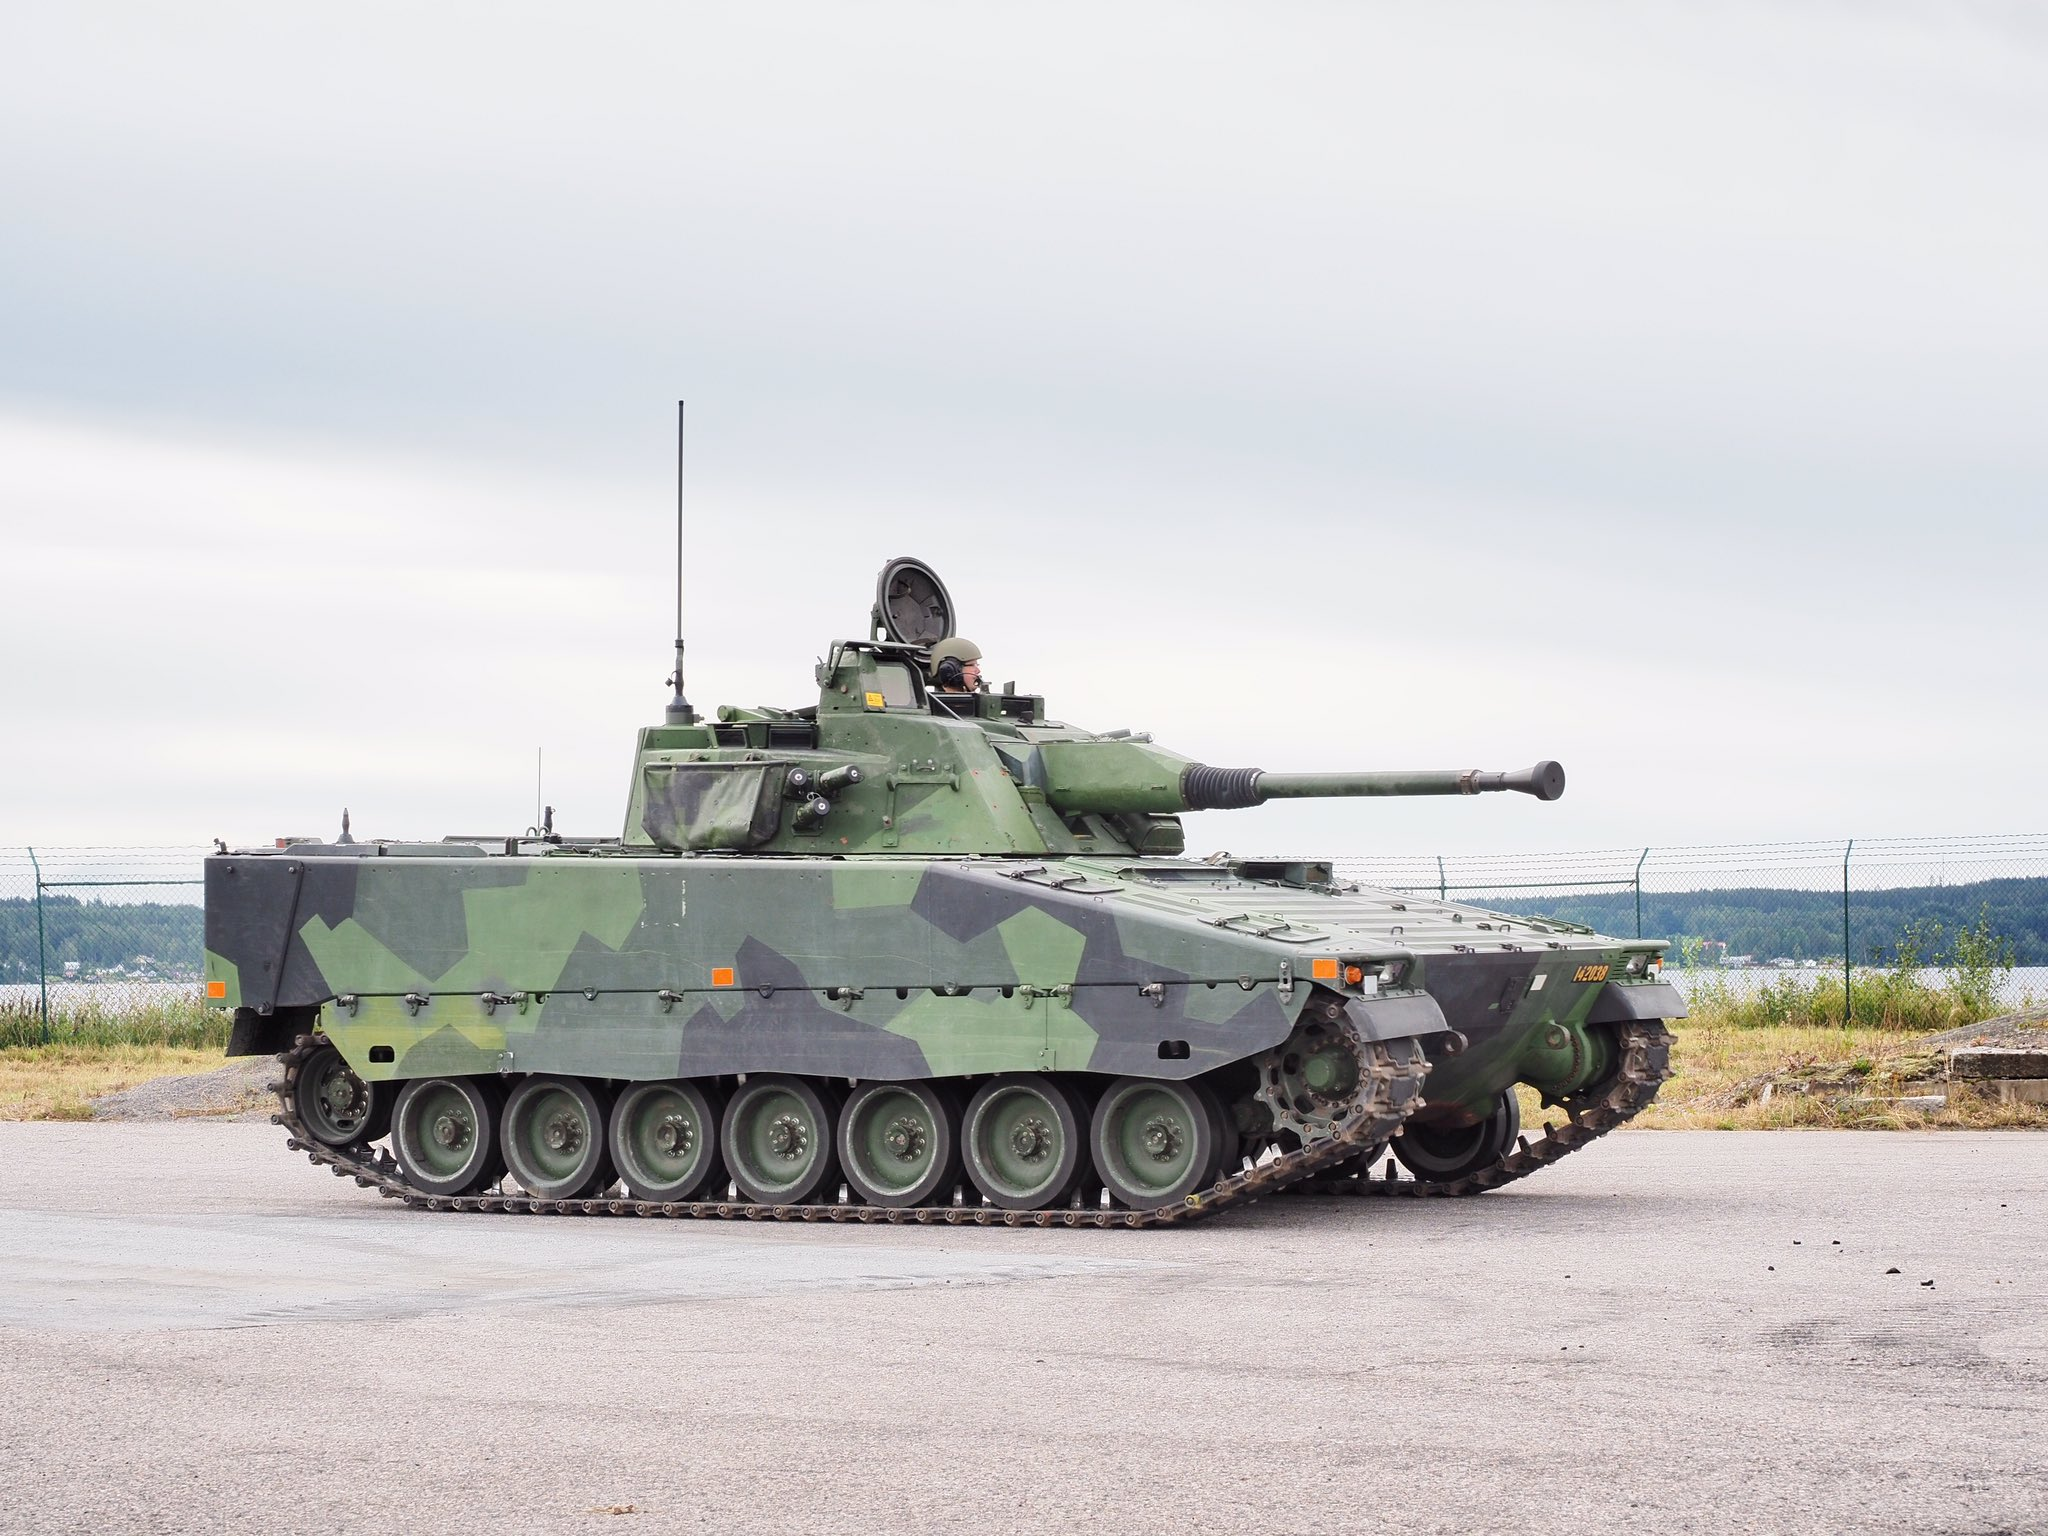 Swedish Army Receives 100th CV90 Infantry Fighting Vehicle - MilitaryLeak